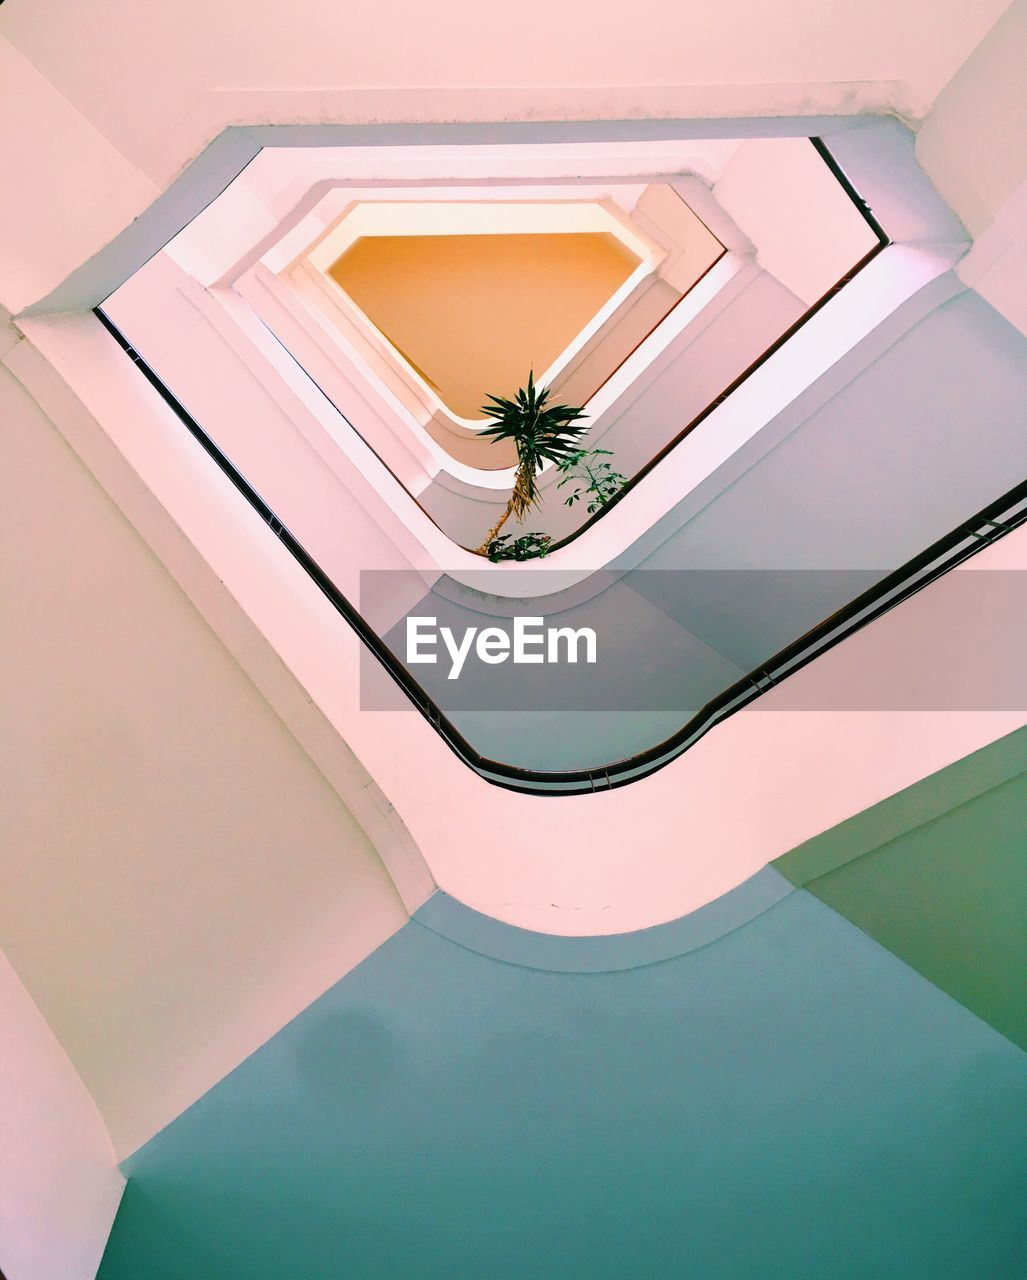 architecture, built structure, indoors, high angle view, real people, one person, ceiling, day, invertebrate, lifestyles, technology, nature, design, building, photography themes, staircase, animal themes